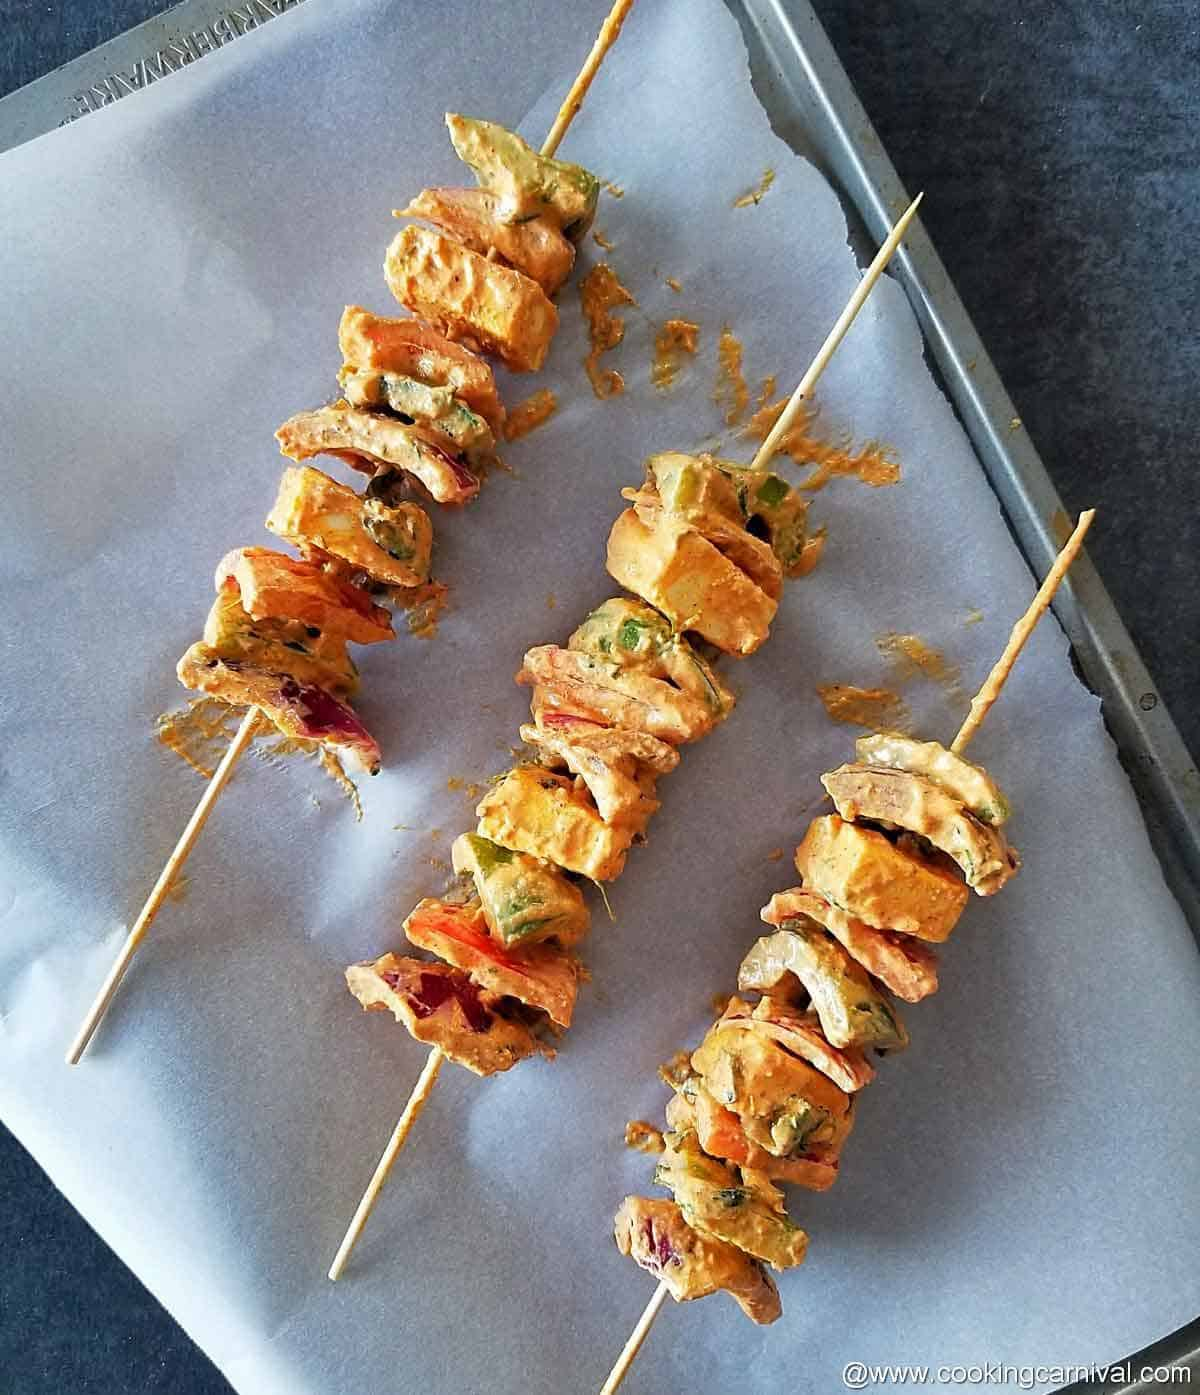 panner, pepper and onion in skewer on a baking sheet